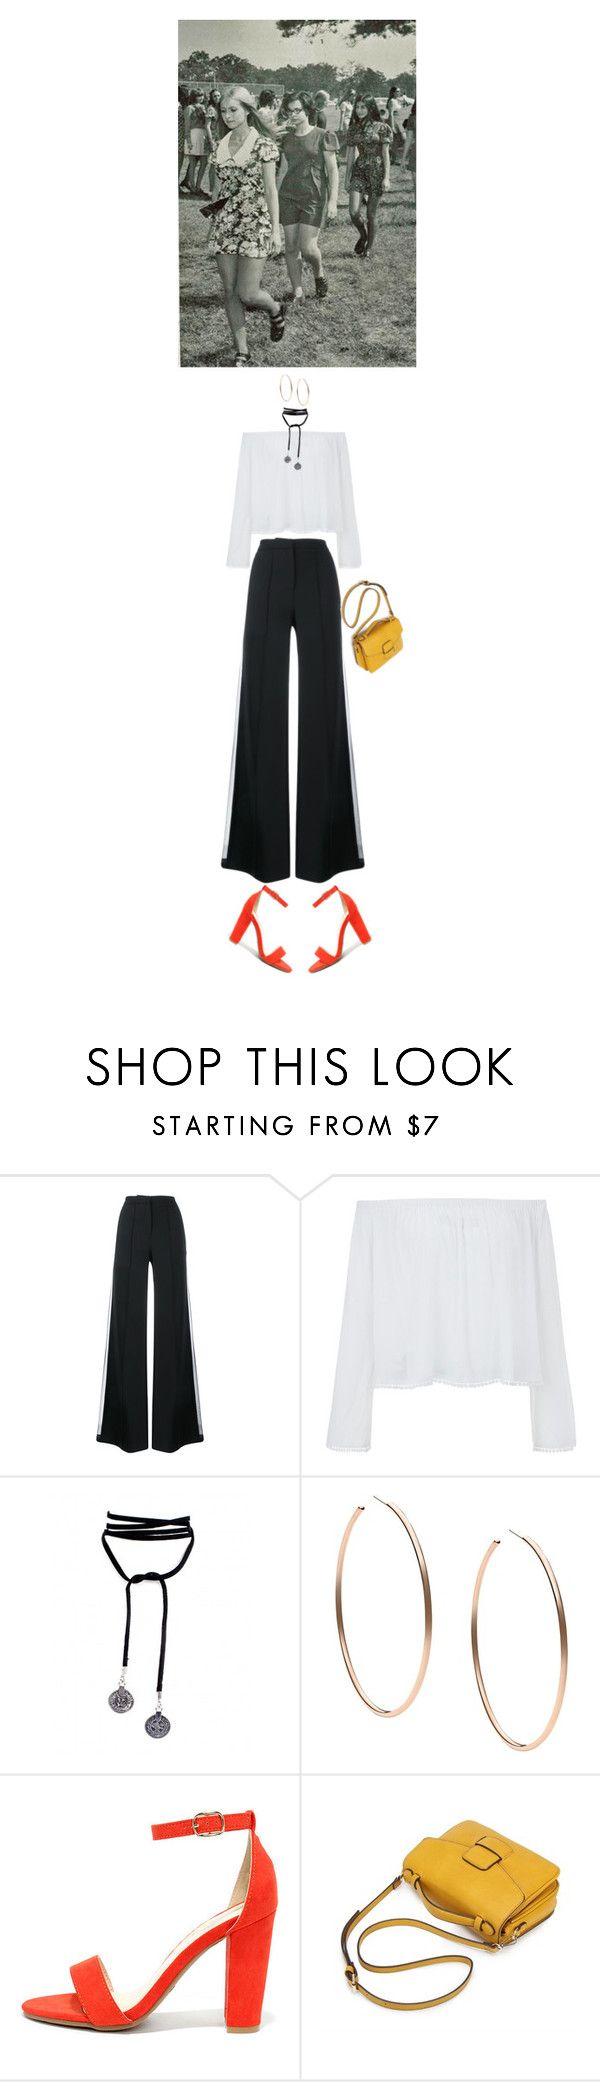 """""""Quick Trends #13 : That's the 70's show, go monochrome with touch of pop color"""" by pgrndjn on Polyvore featuring mode, ADAM, Michael Kors et Bamboo"""